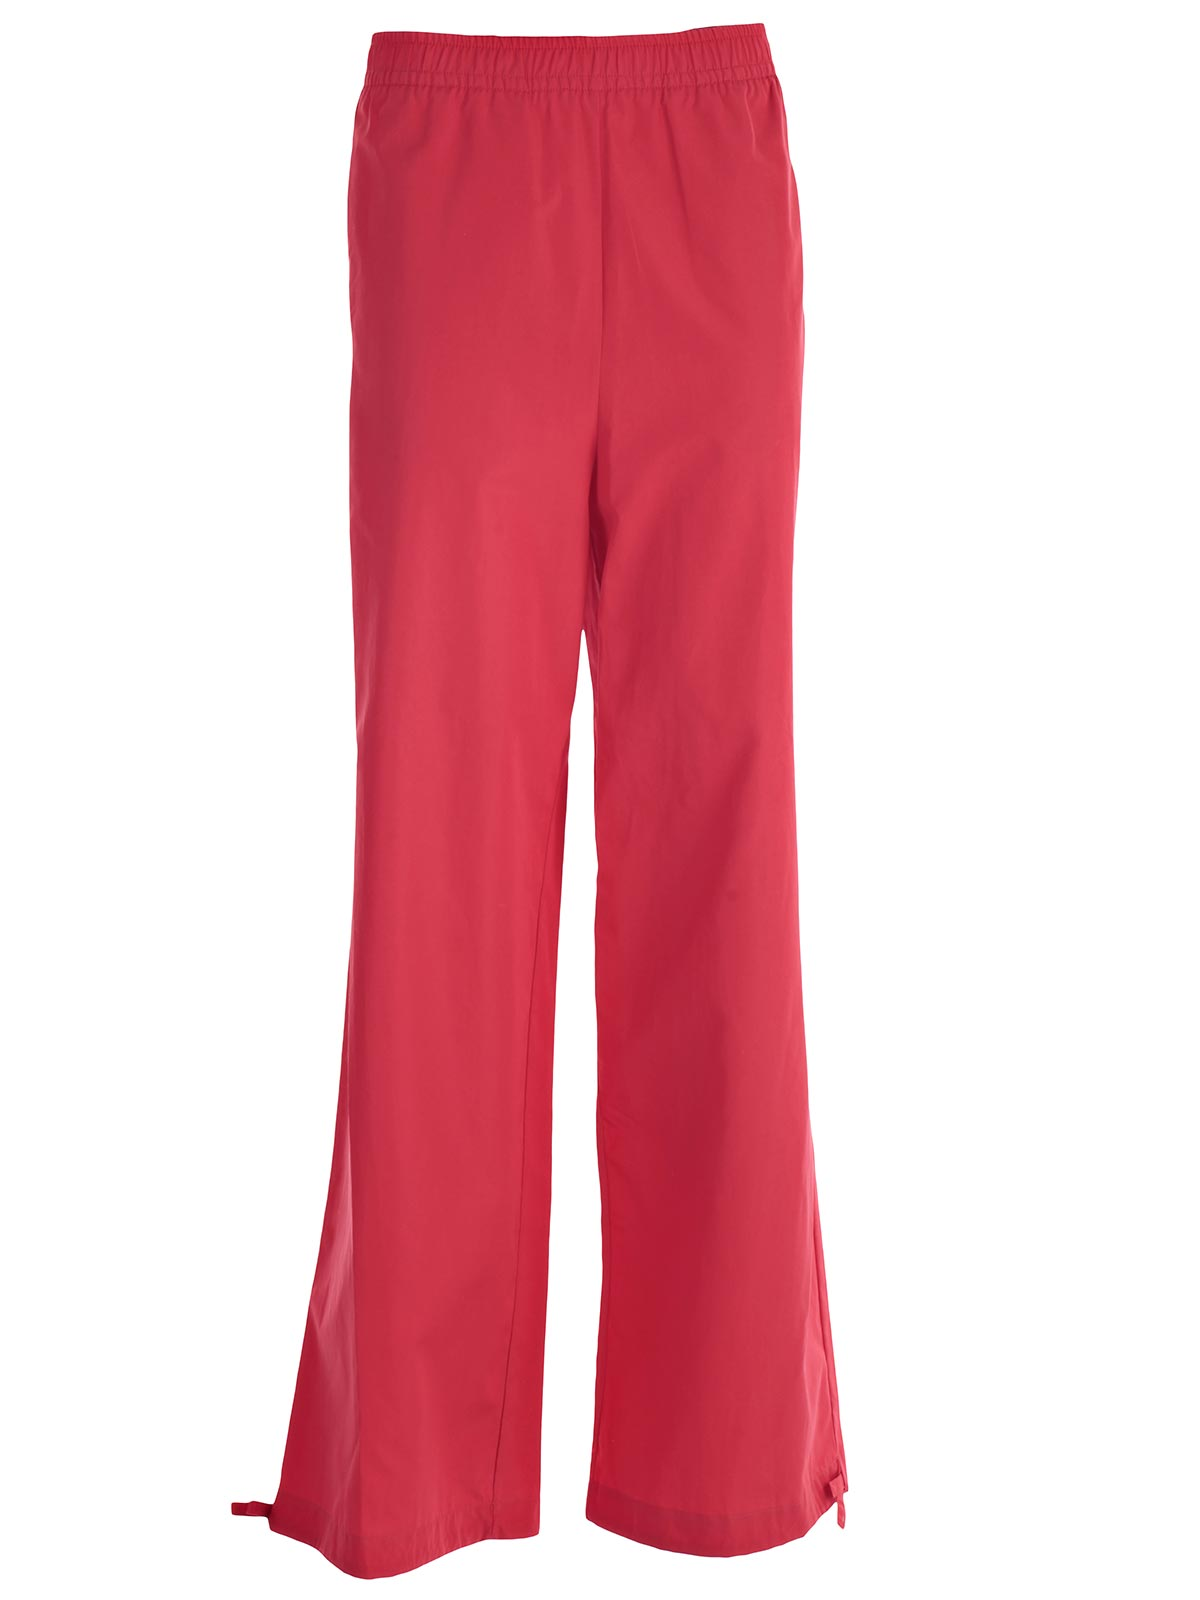 Picture of PORTS 1961 TROUSERS PANTALONE COULISSE IN FONDO